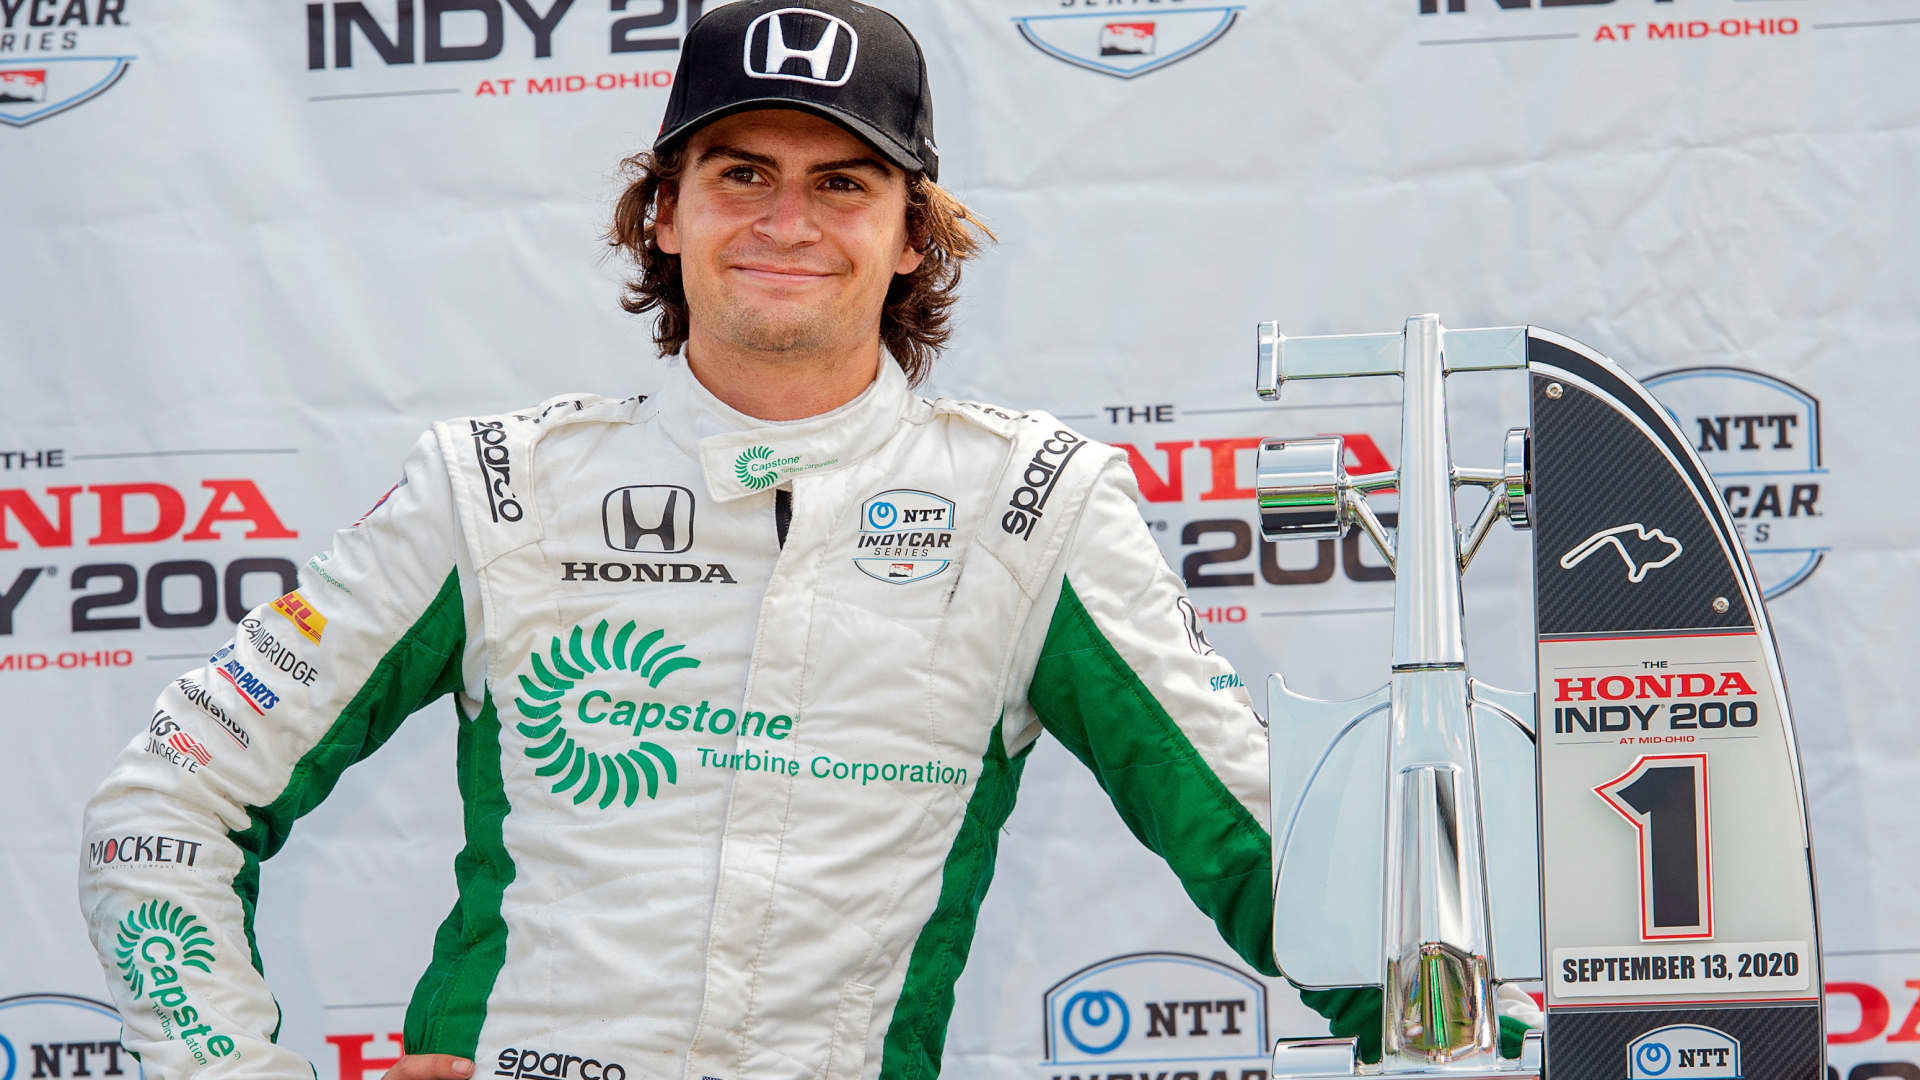 Colton Herta waits on the award stand after winning the IndyCar Series auto race, at Mid-Ohio Sports Car Course, Sunday, Sept. 13, 2020, in Lexington, Ohio.